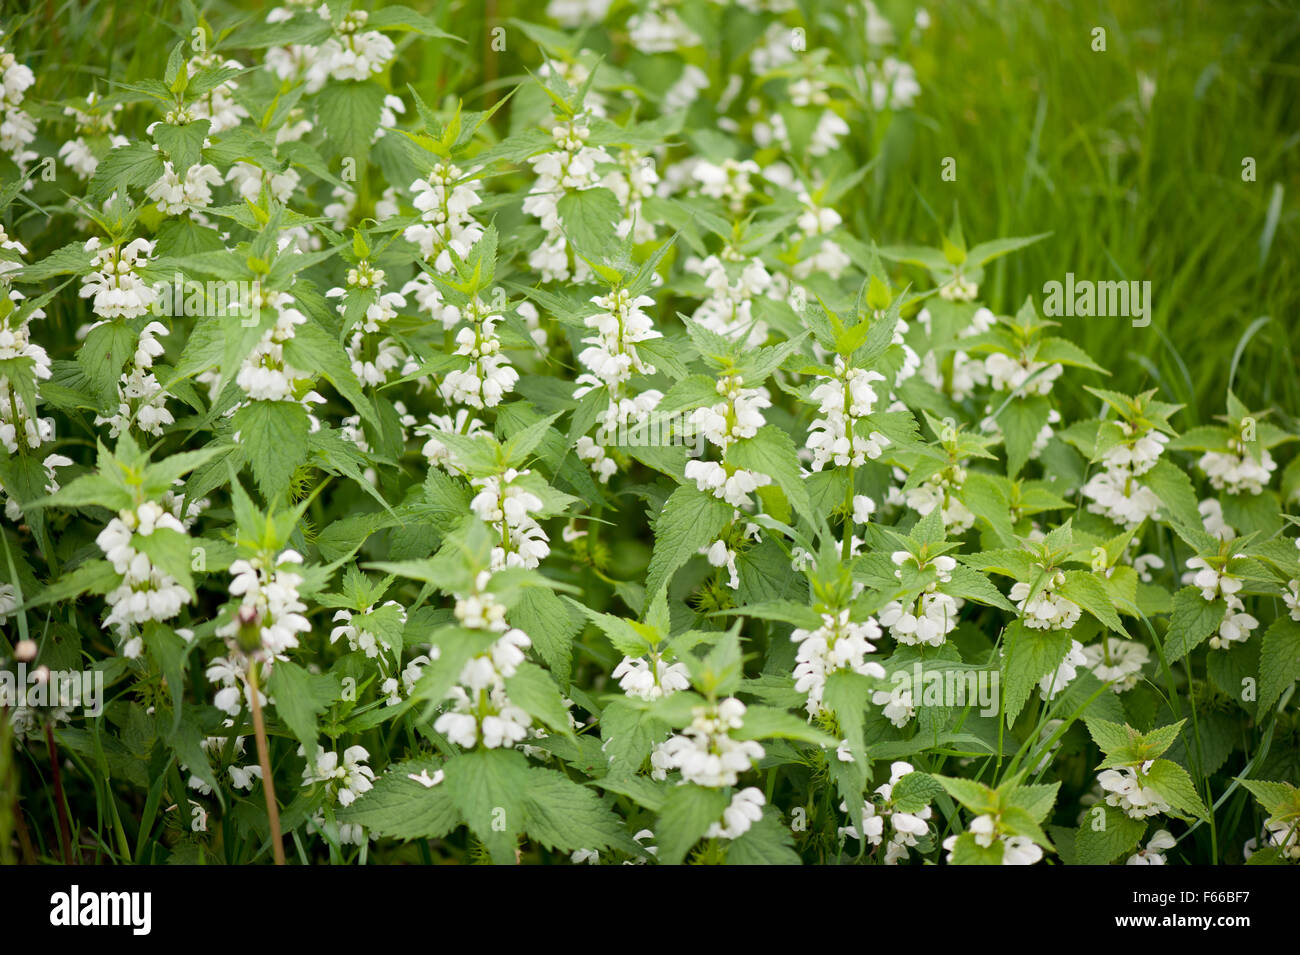 Flowering plant family lamiaceae stock photos flowering plant lamium album white flowering herbal medicine perennial plant in the lamiaceae family called white nettle mightylinksfo